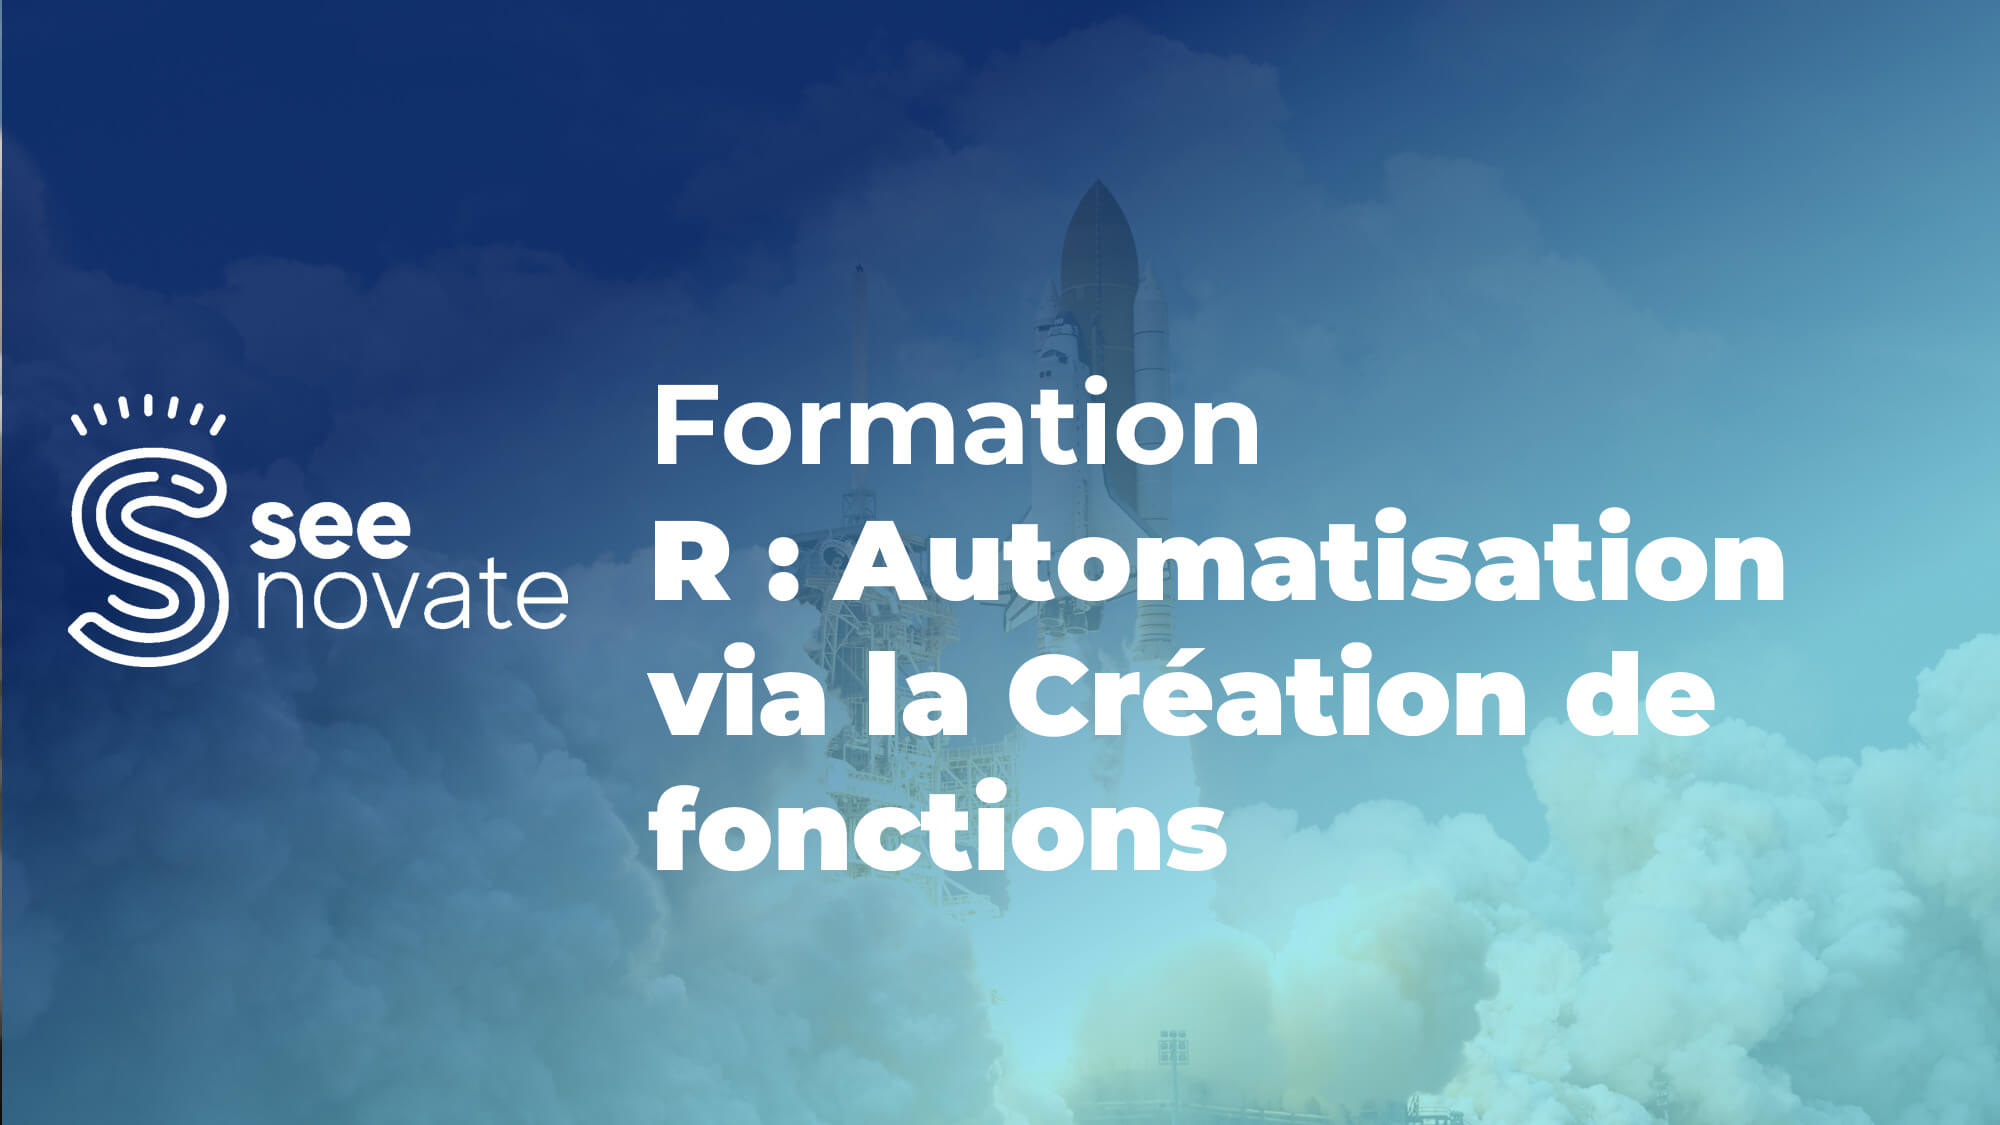 formation seenovate automatisation R